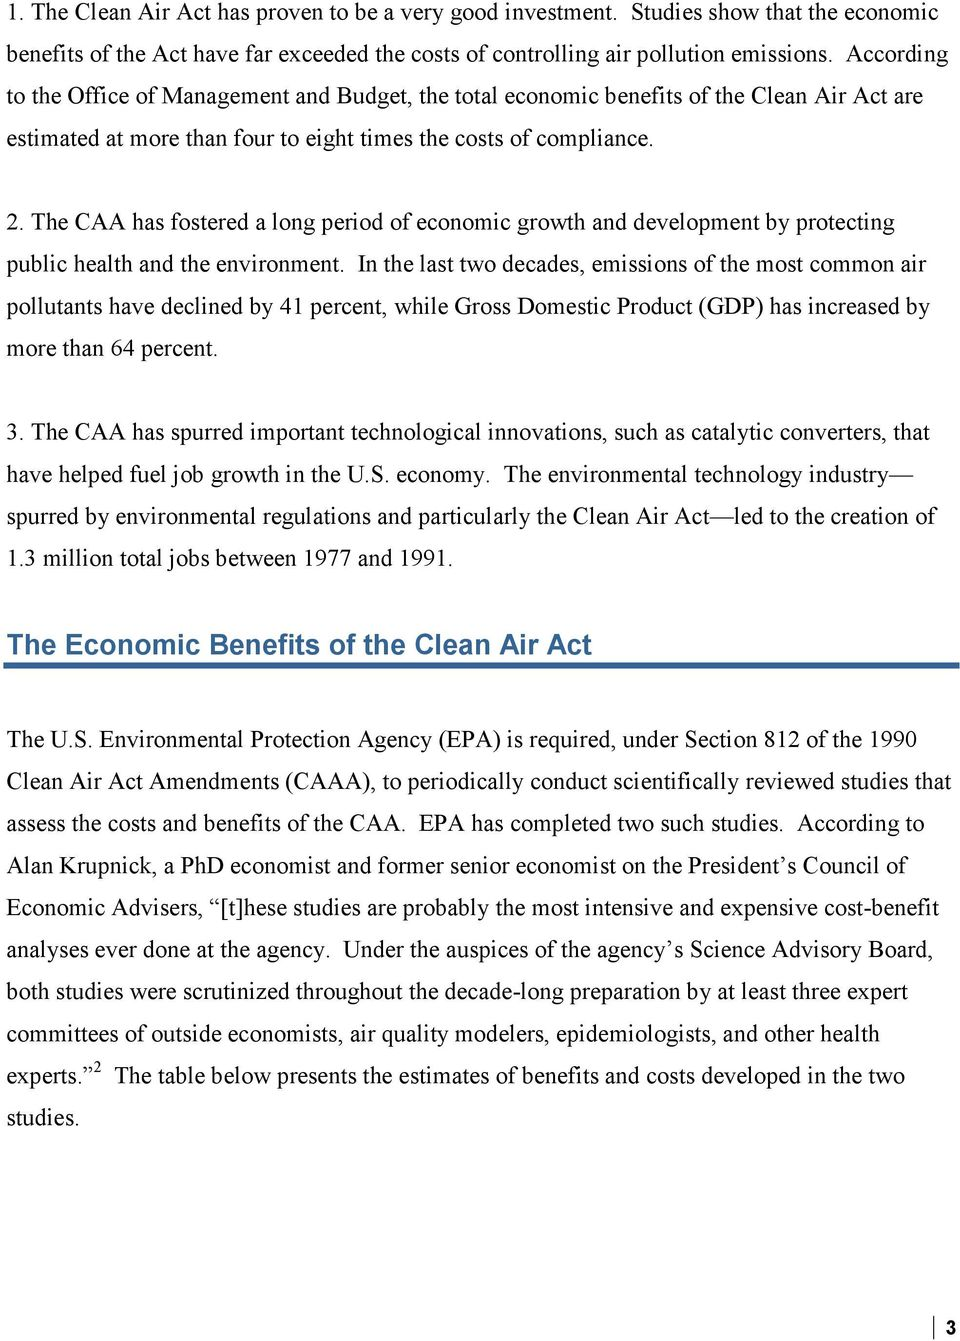 The CAA has fostered a long period of economic growth and development by protecting public health and the environment.